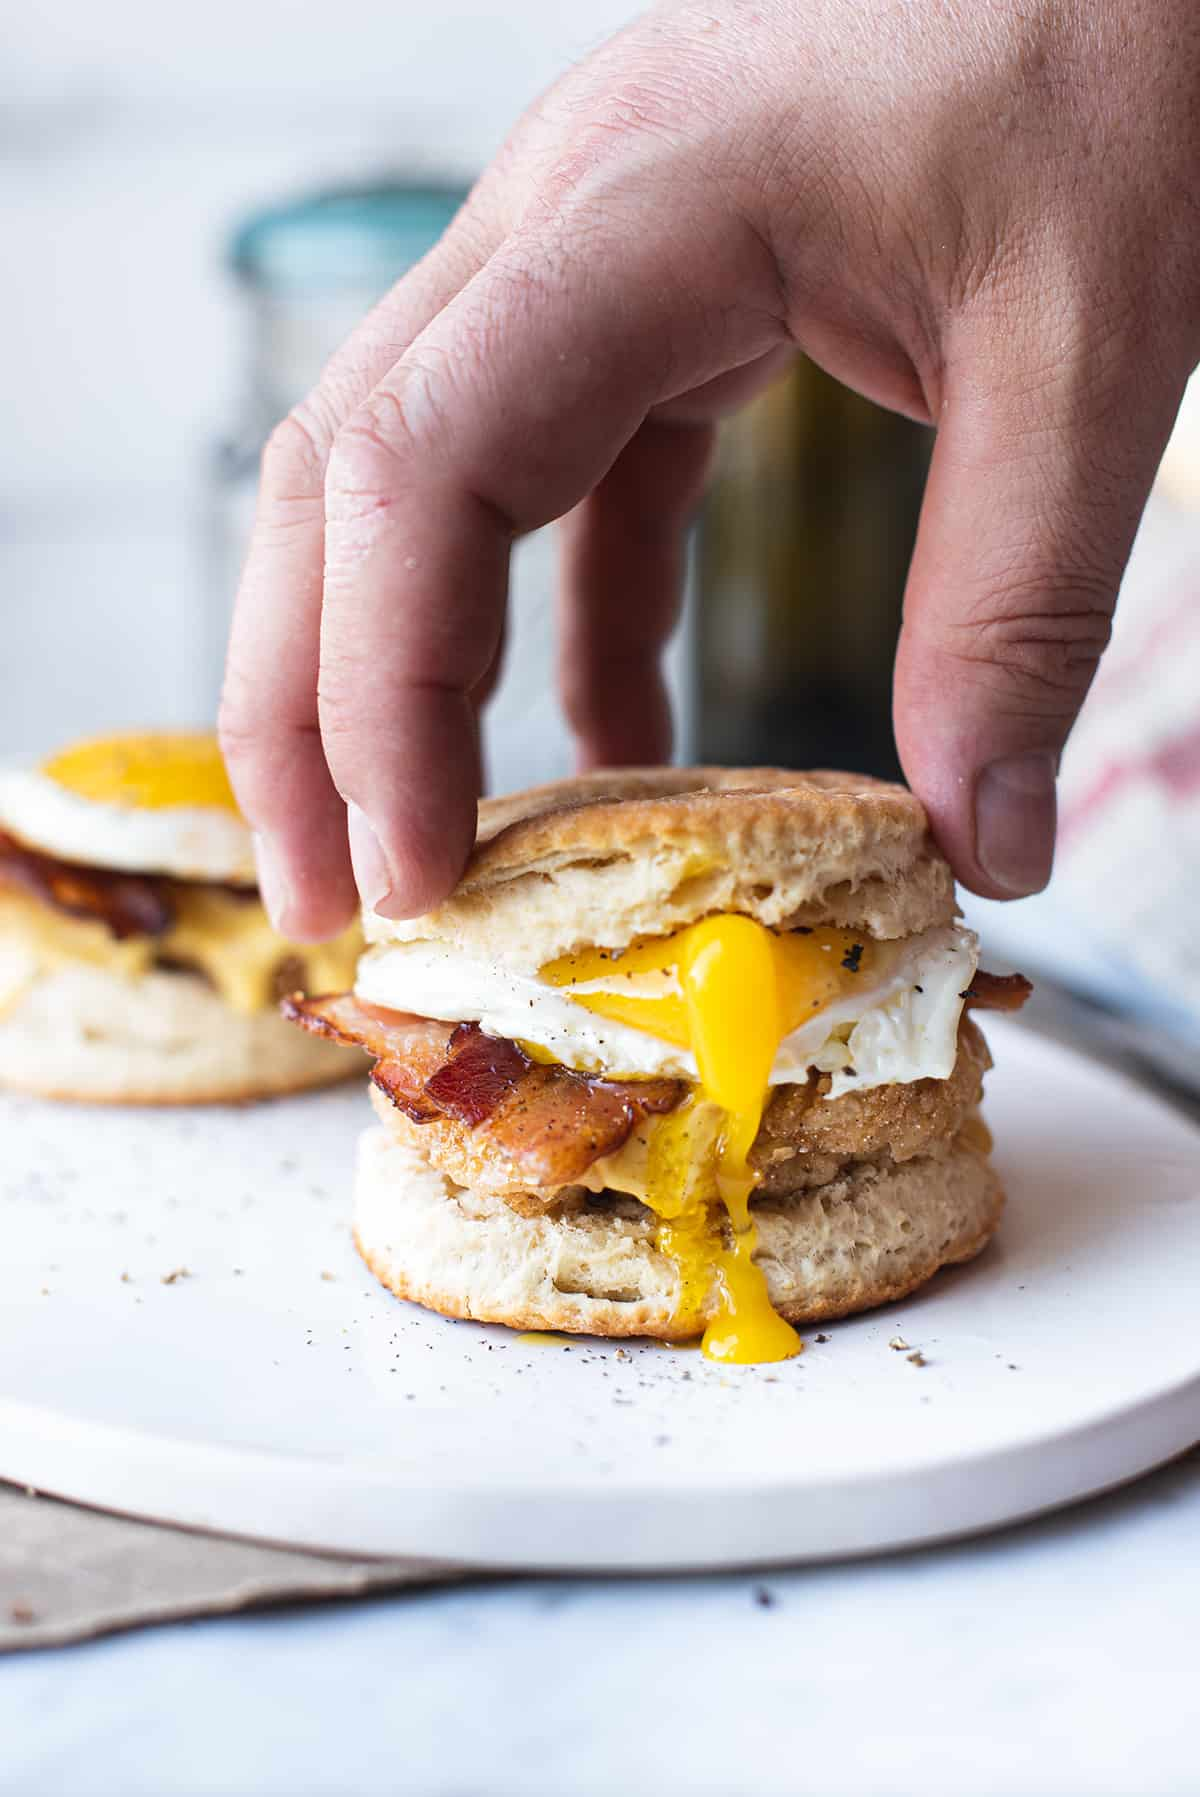 chicken & biscuit sandwich with hand on top and runny yolk